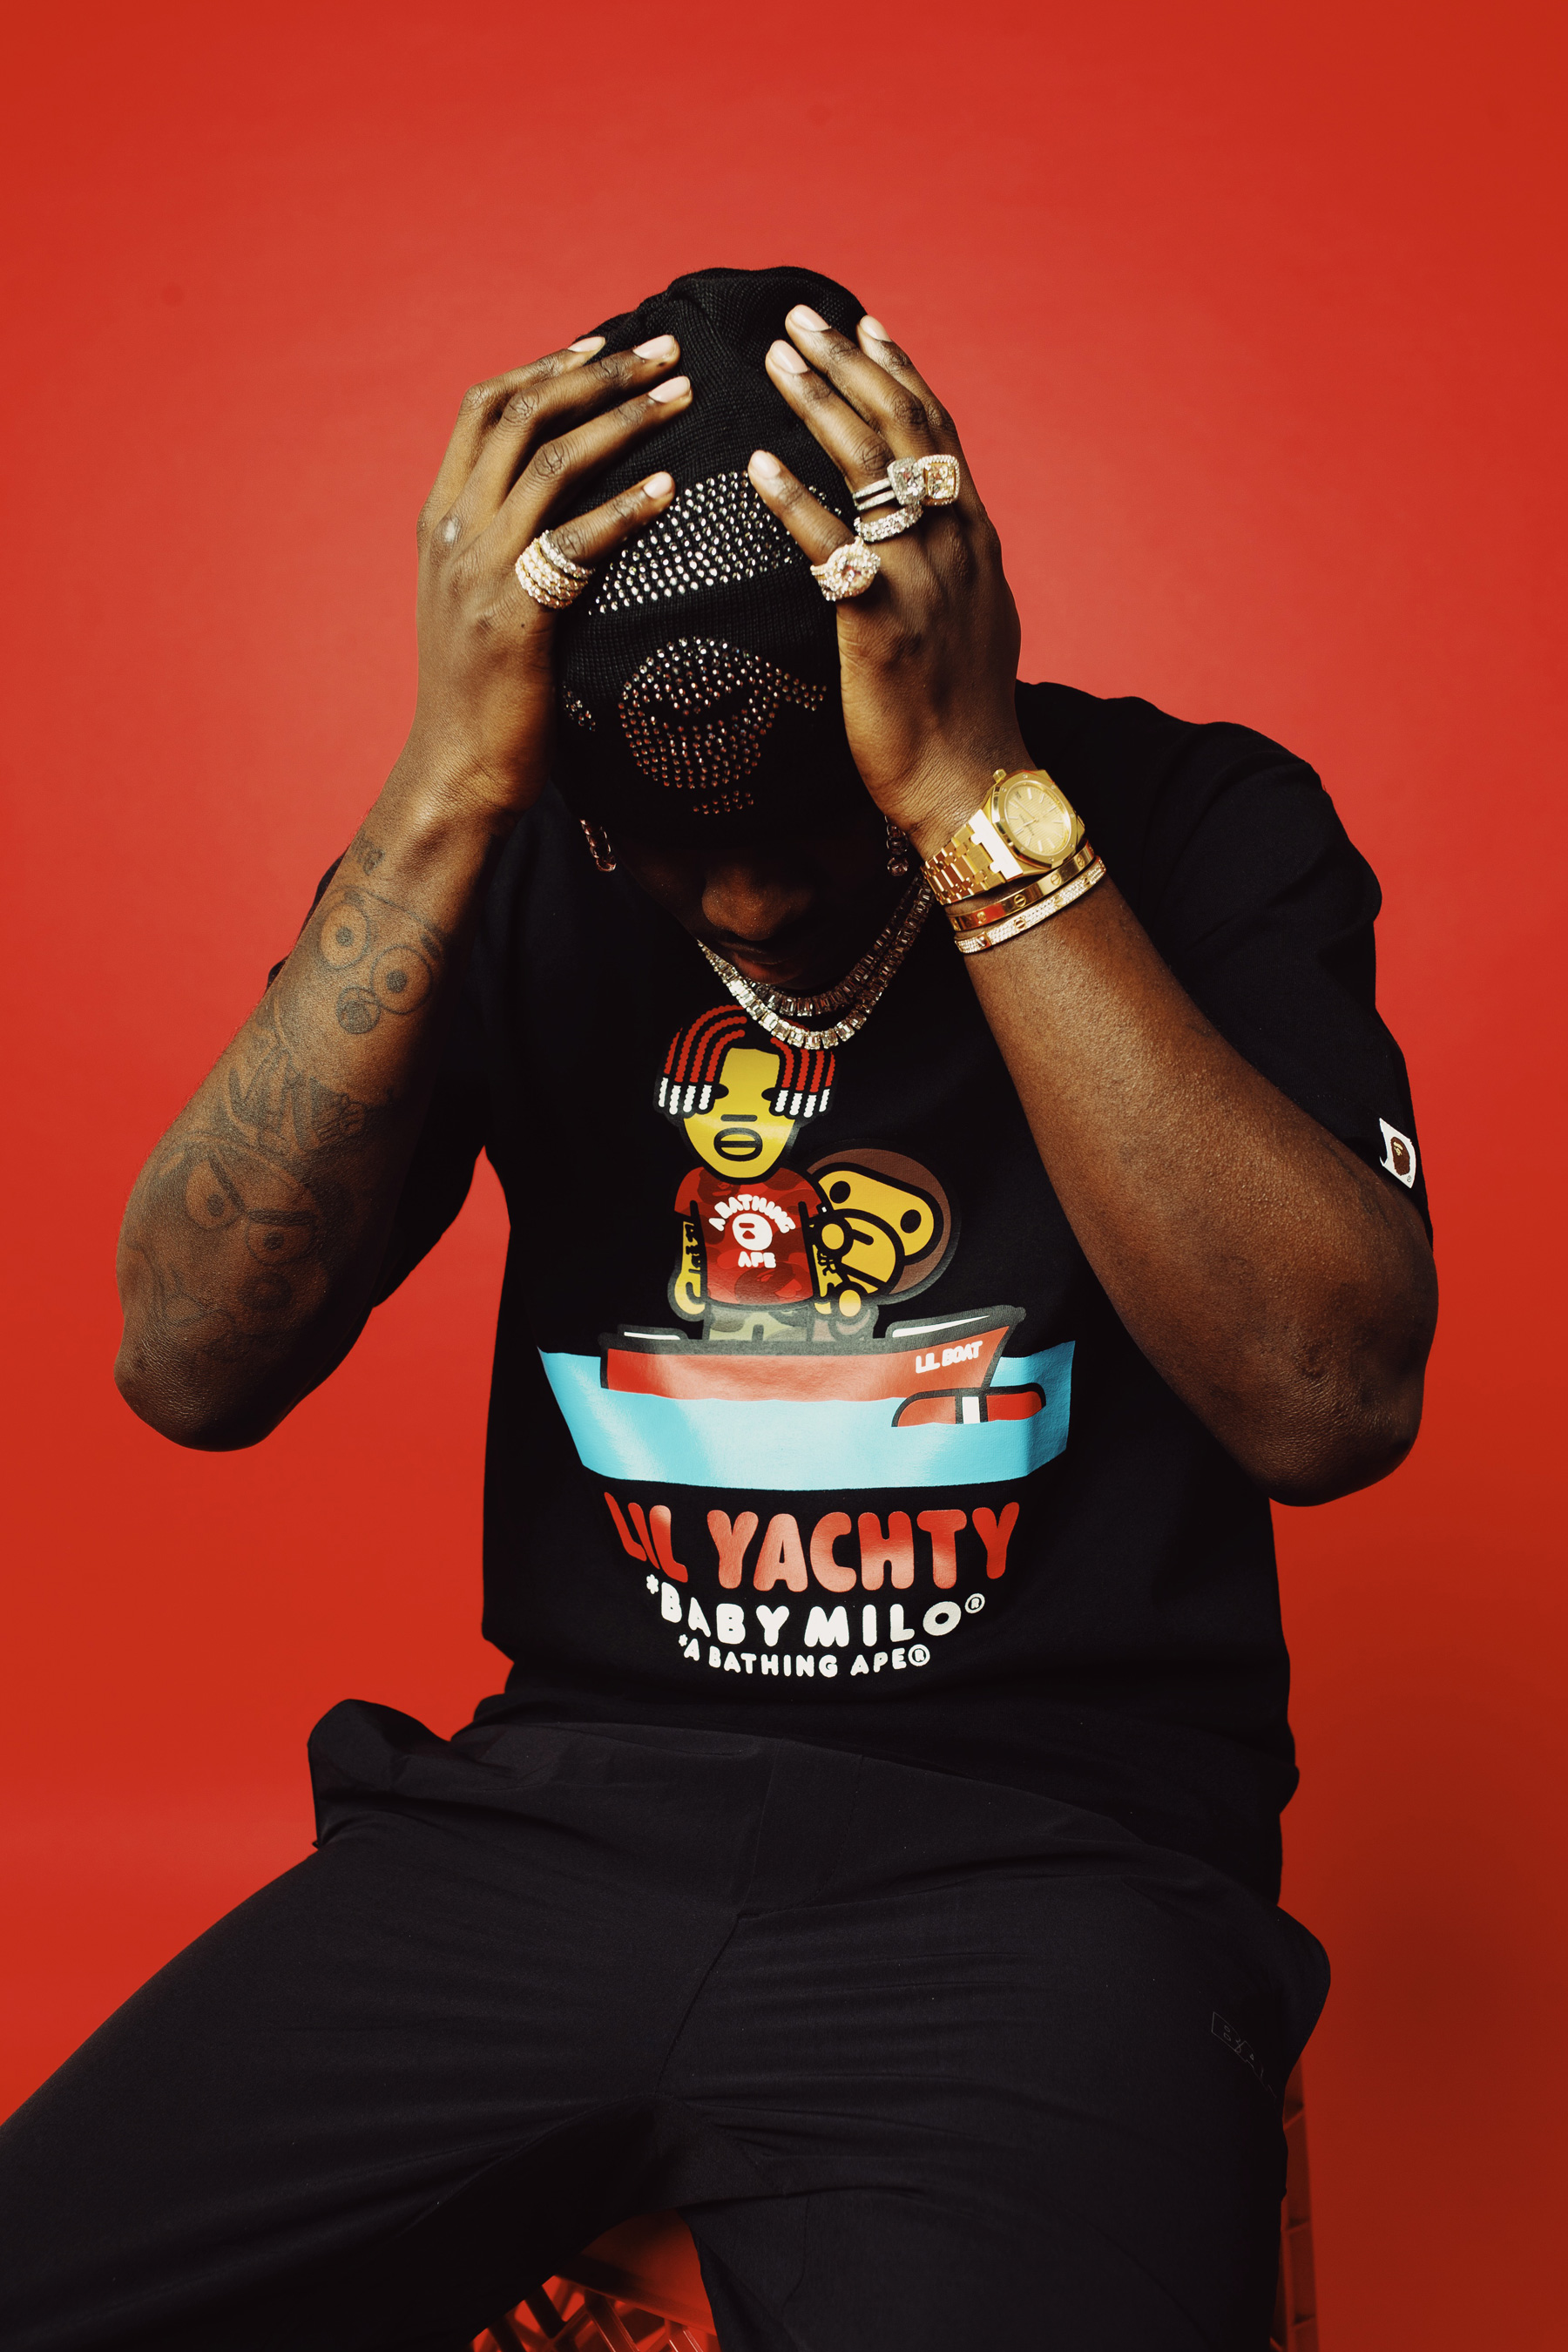 Lil Yachty x BAPE SS19 Collection a bathing ape spring summer 2019 lookbooks bape heads show concerts mankey baby milo